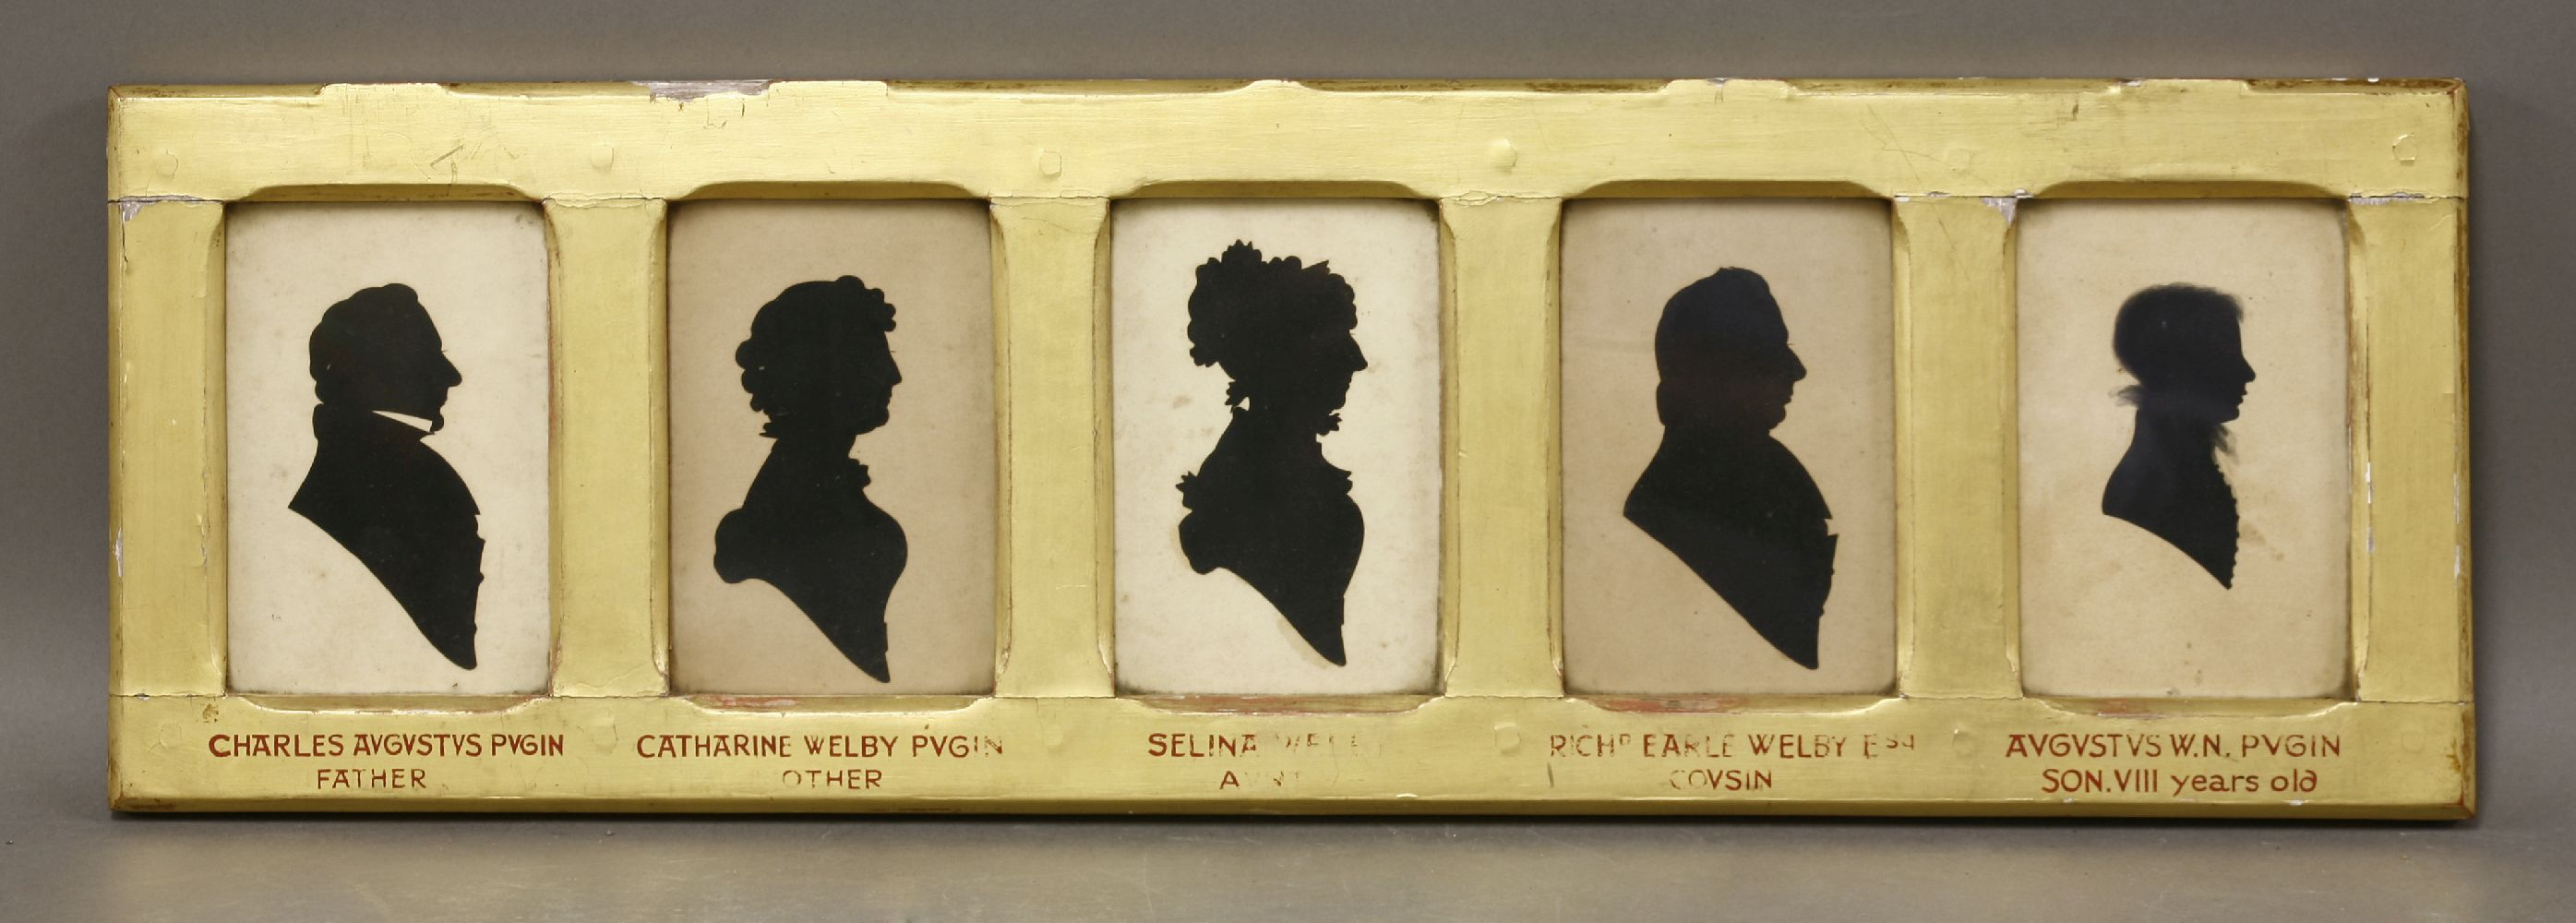 Five Silhouettes Charles Augustus Pugin Father Catherine Welby  # Augustus Pugin Muebles